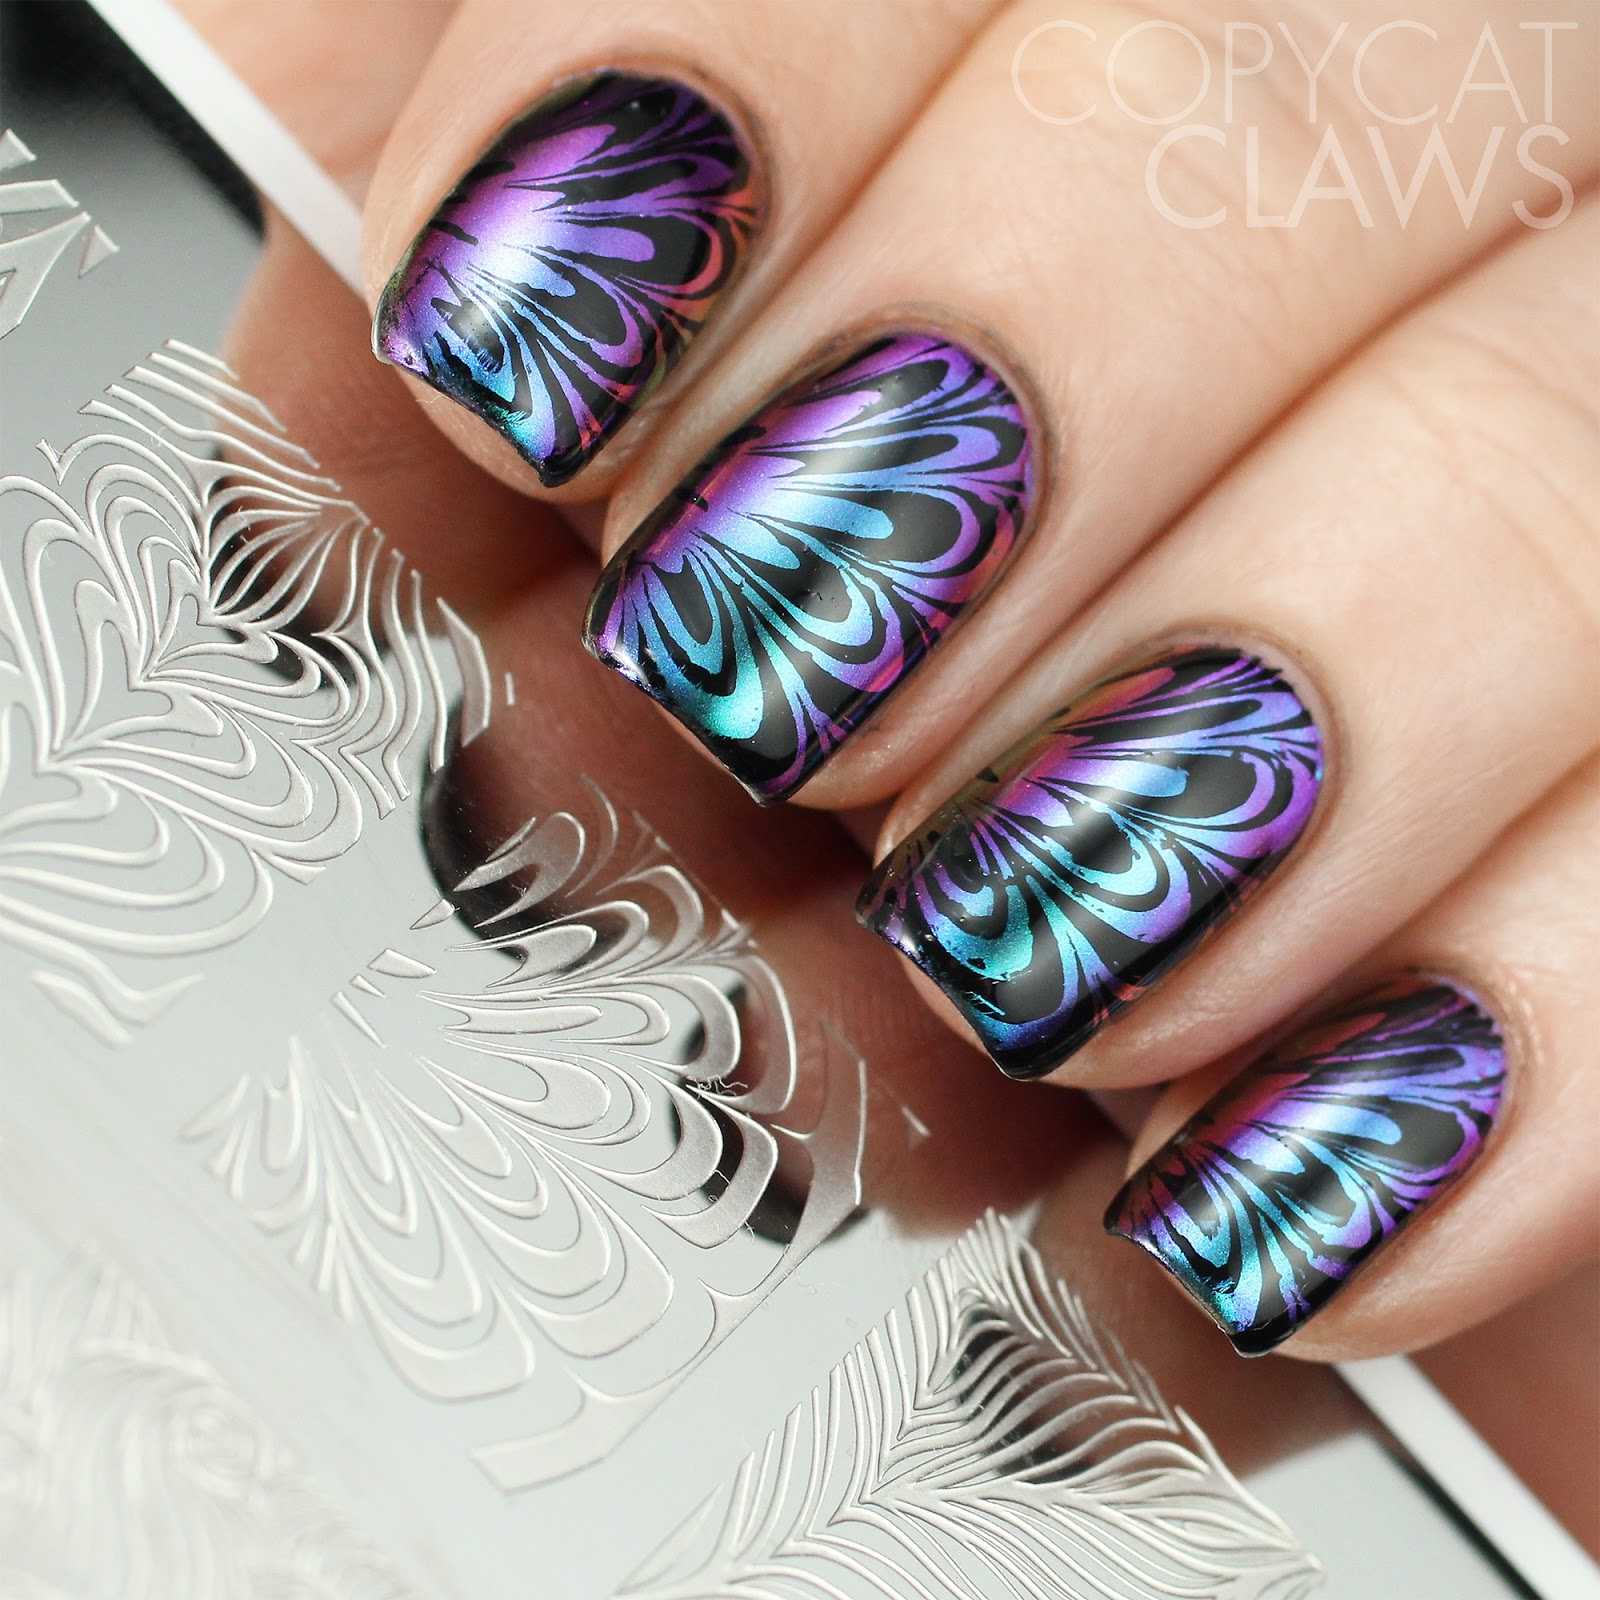 Copycat Claws: Whats Up Nails Paradise Powder and Water Marble ...